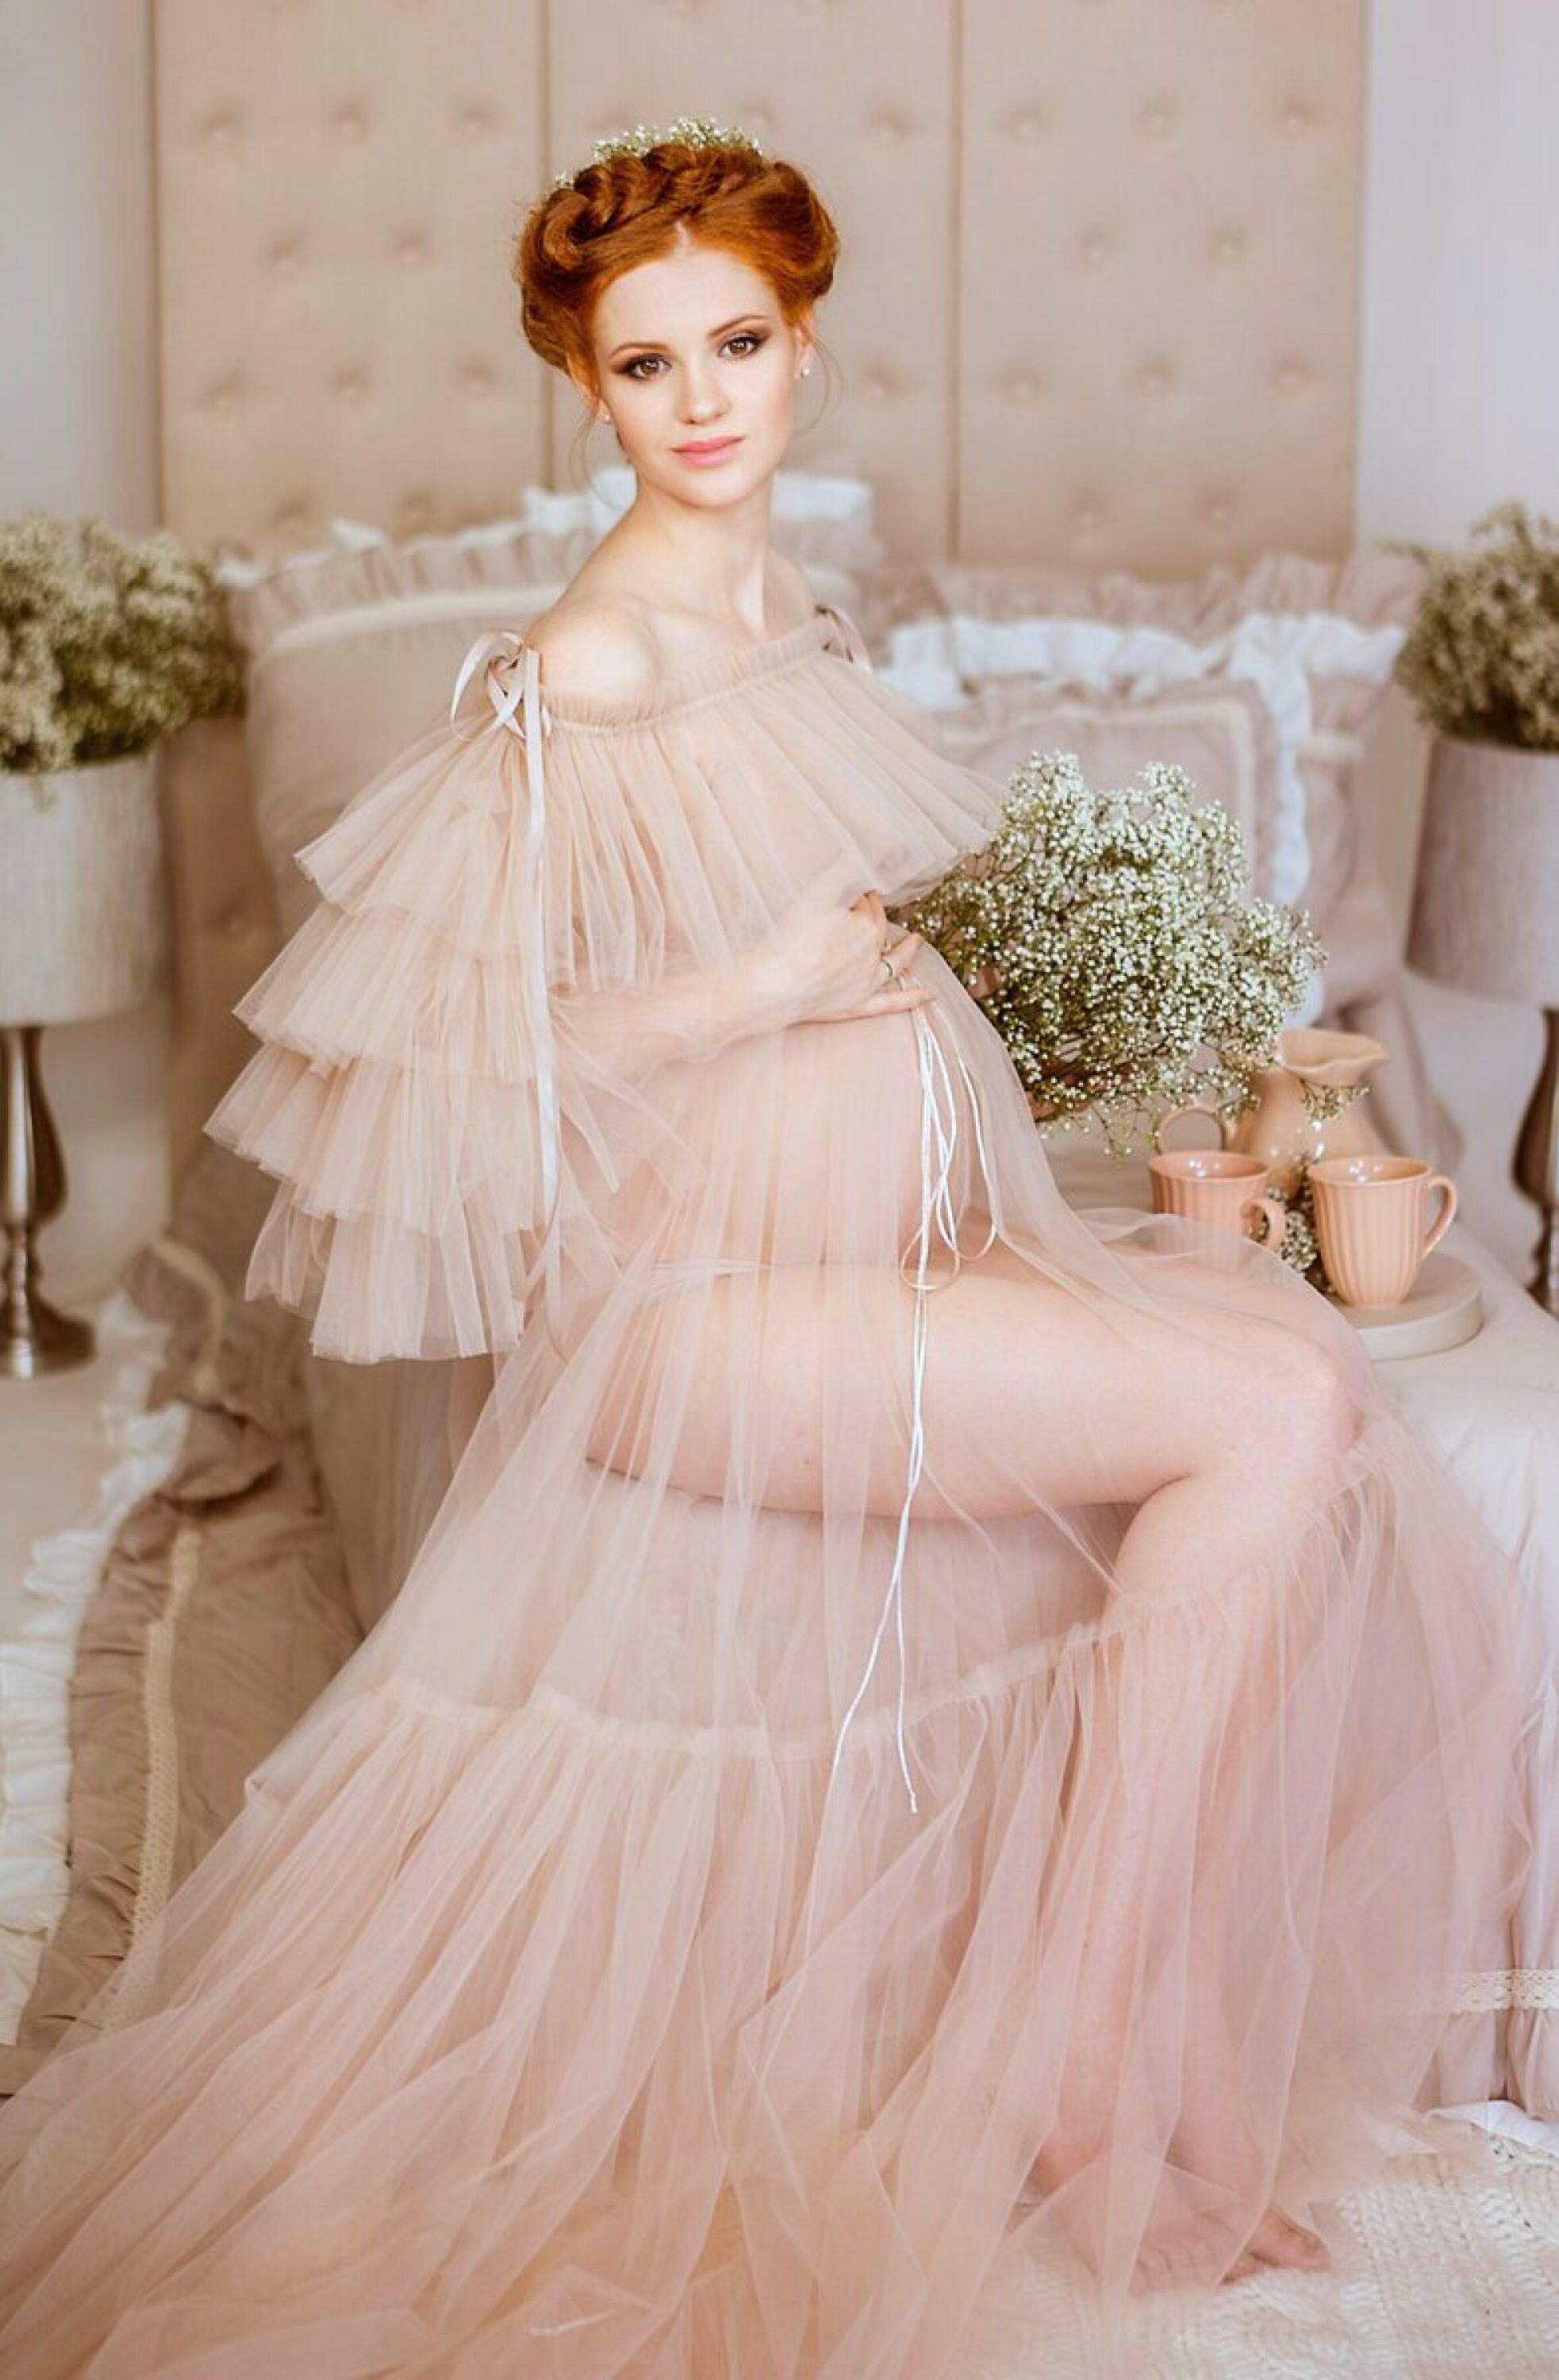 be7243cb876 LEILA GOWN Drop Sleeves Tulle Maternity Gown Dress for Photoshoot Belly  dress Tule Photography Tüllkleid Fotoshooting